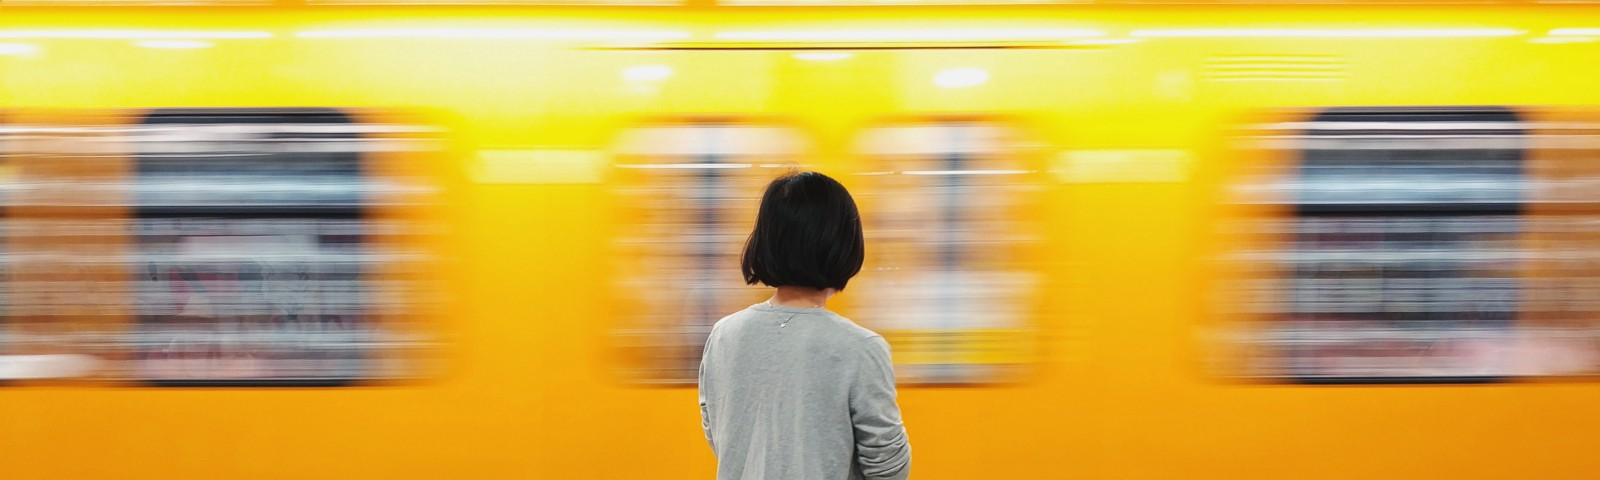 A woman standing in front of a yellow passing subway train. She is also wearing a yellow dress.